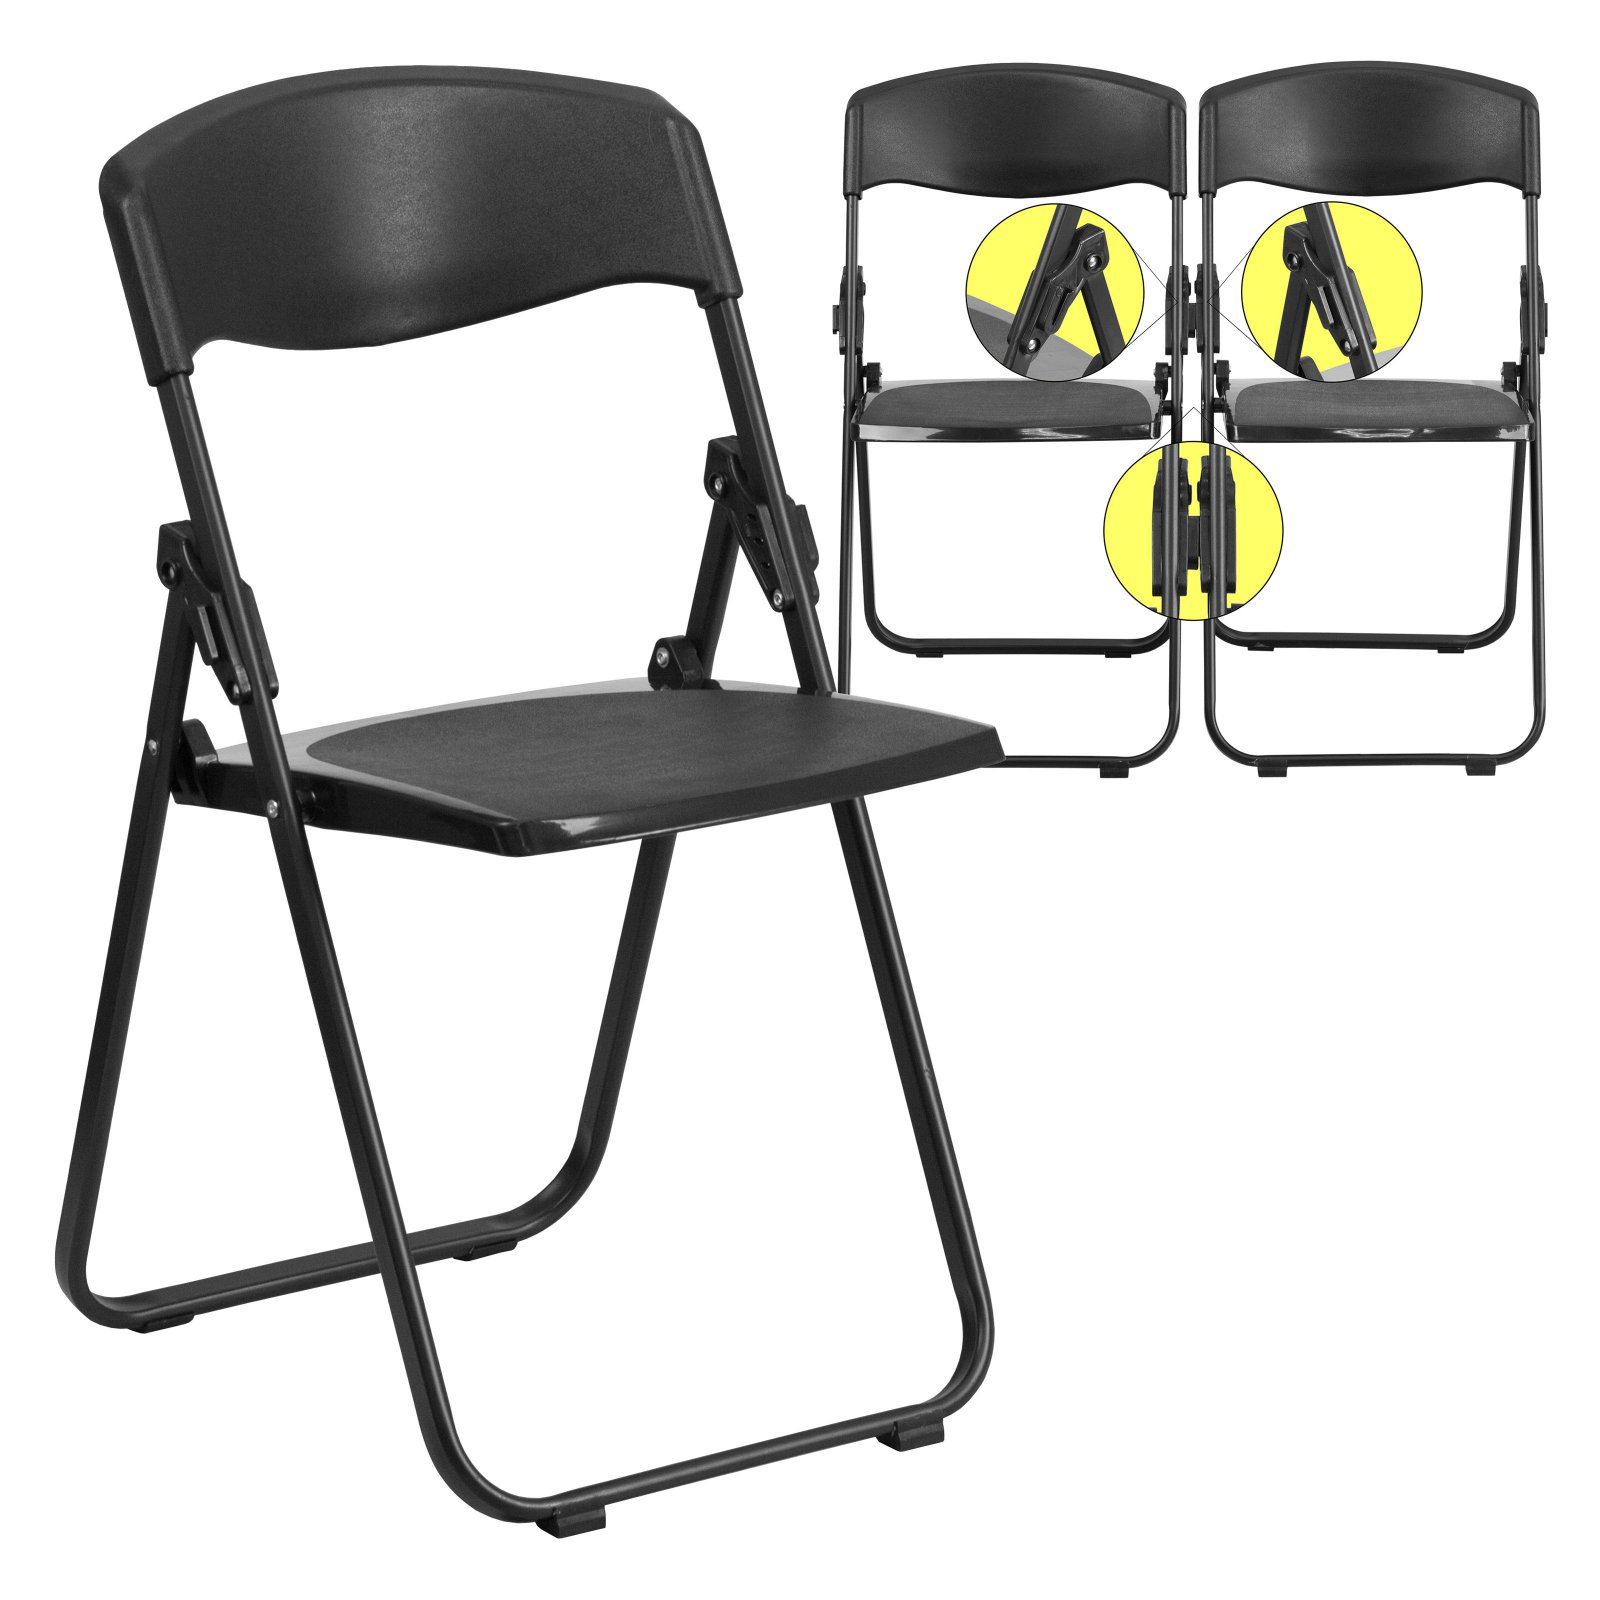 Etonnant Flash Furniture HERCULES Series 880 Lb. Capacity Heavy Duty Plastic Folding  Chair With Built